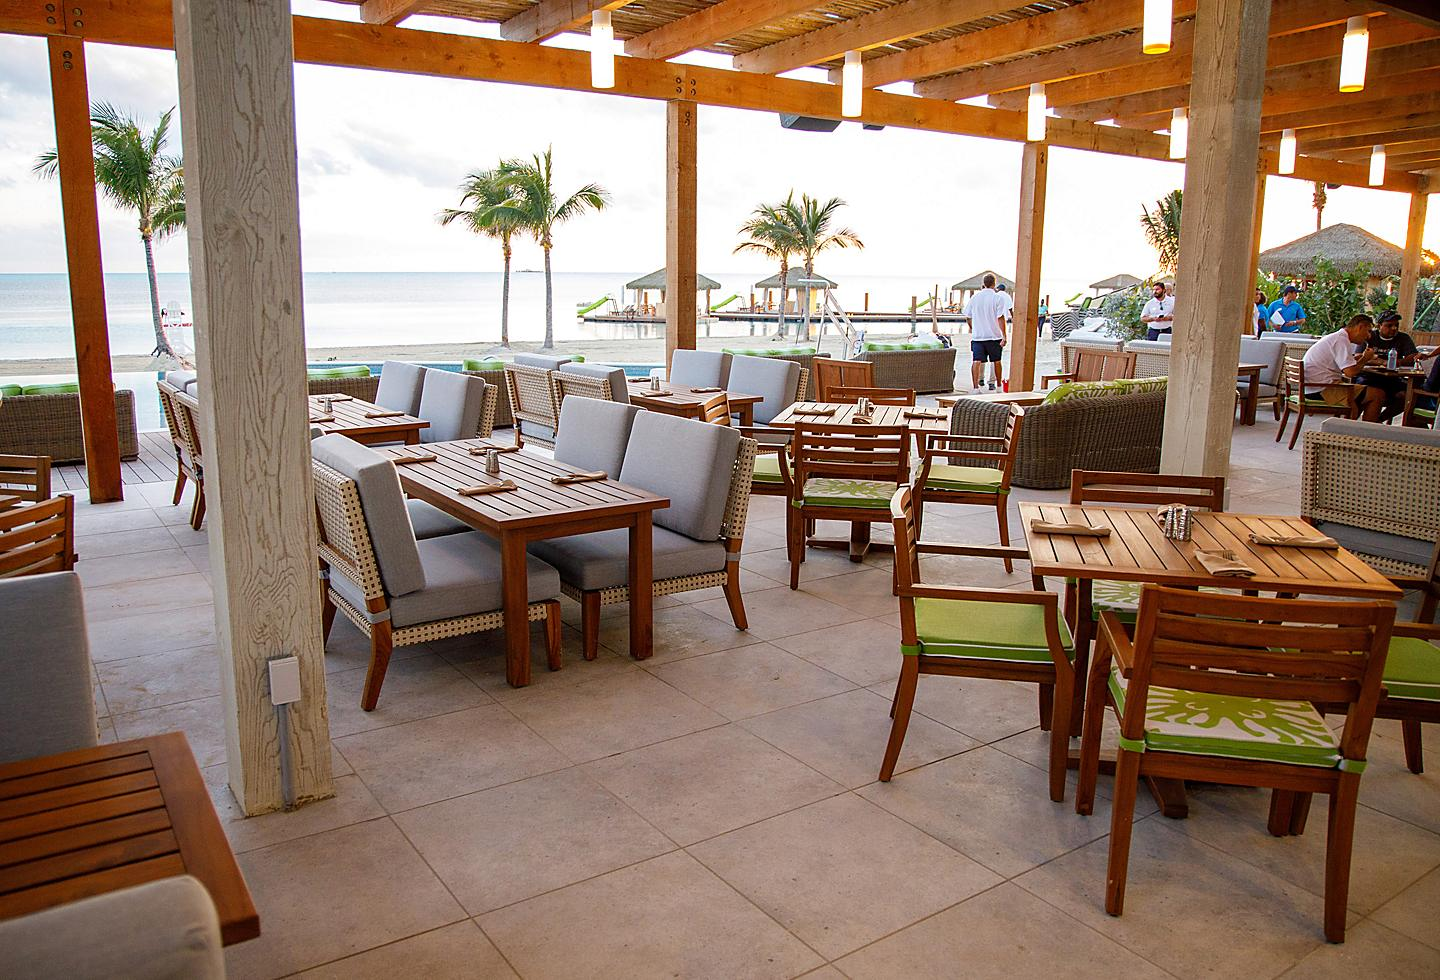 Coco Beach Club Restaurant